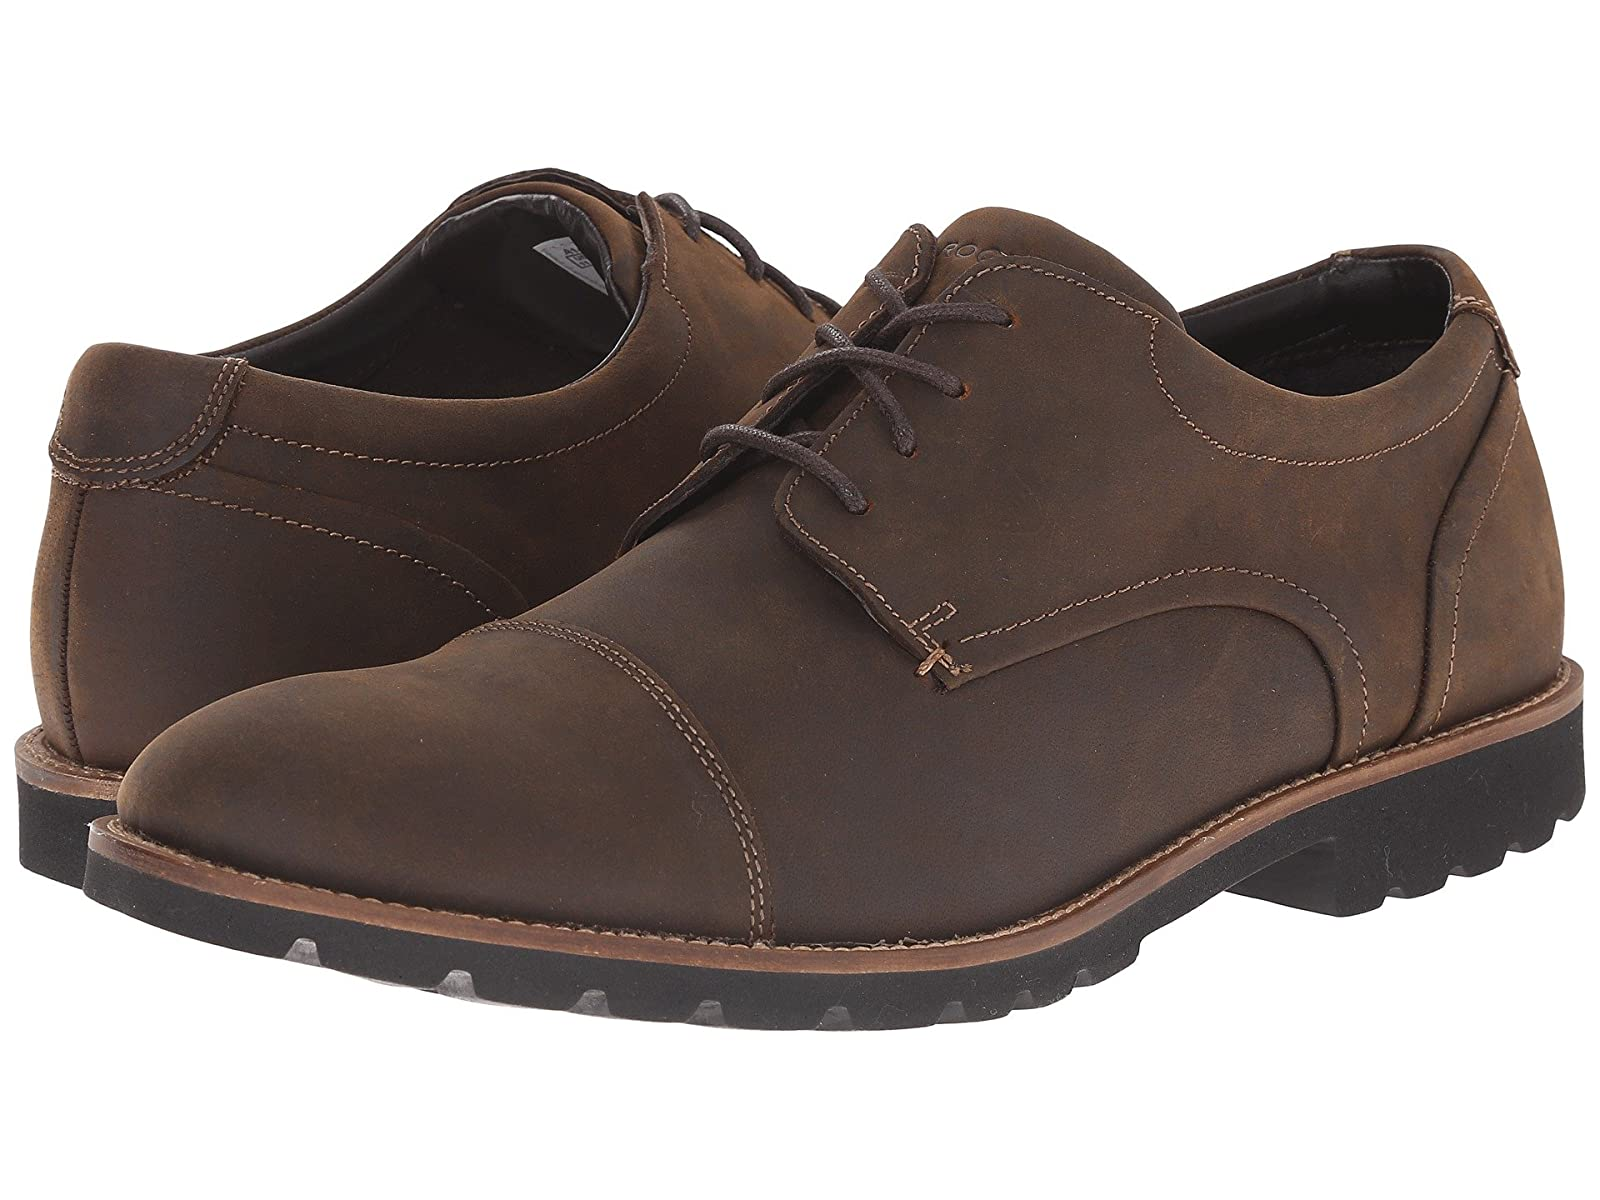 Rockport Sharp & Ready ChannerCheap and distinctive eye-catching shoes